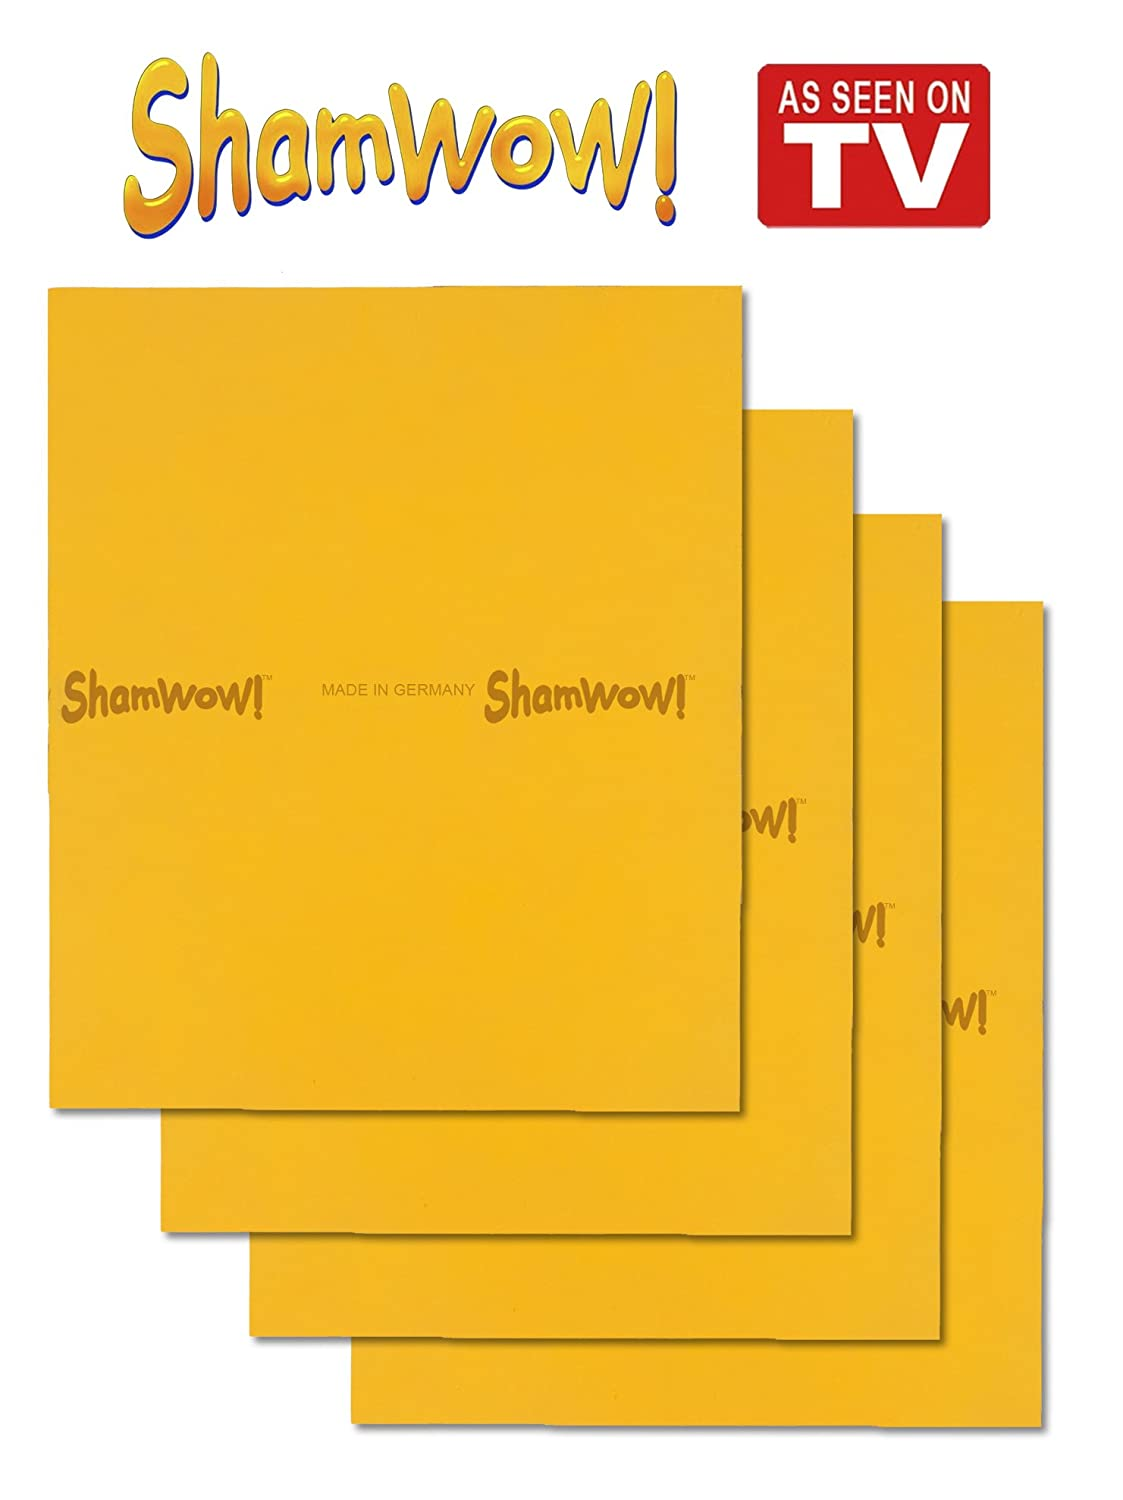 The Original Shamwow - Super Absorbent Multi-Purpose Cleaning Shammy (Chamois) Towel Cloth, Machine Washable, Will Not Scratch, Orange Square One Entertainment Inc. ShamwowOrange1